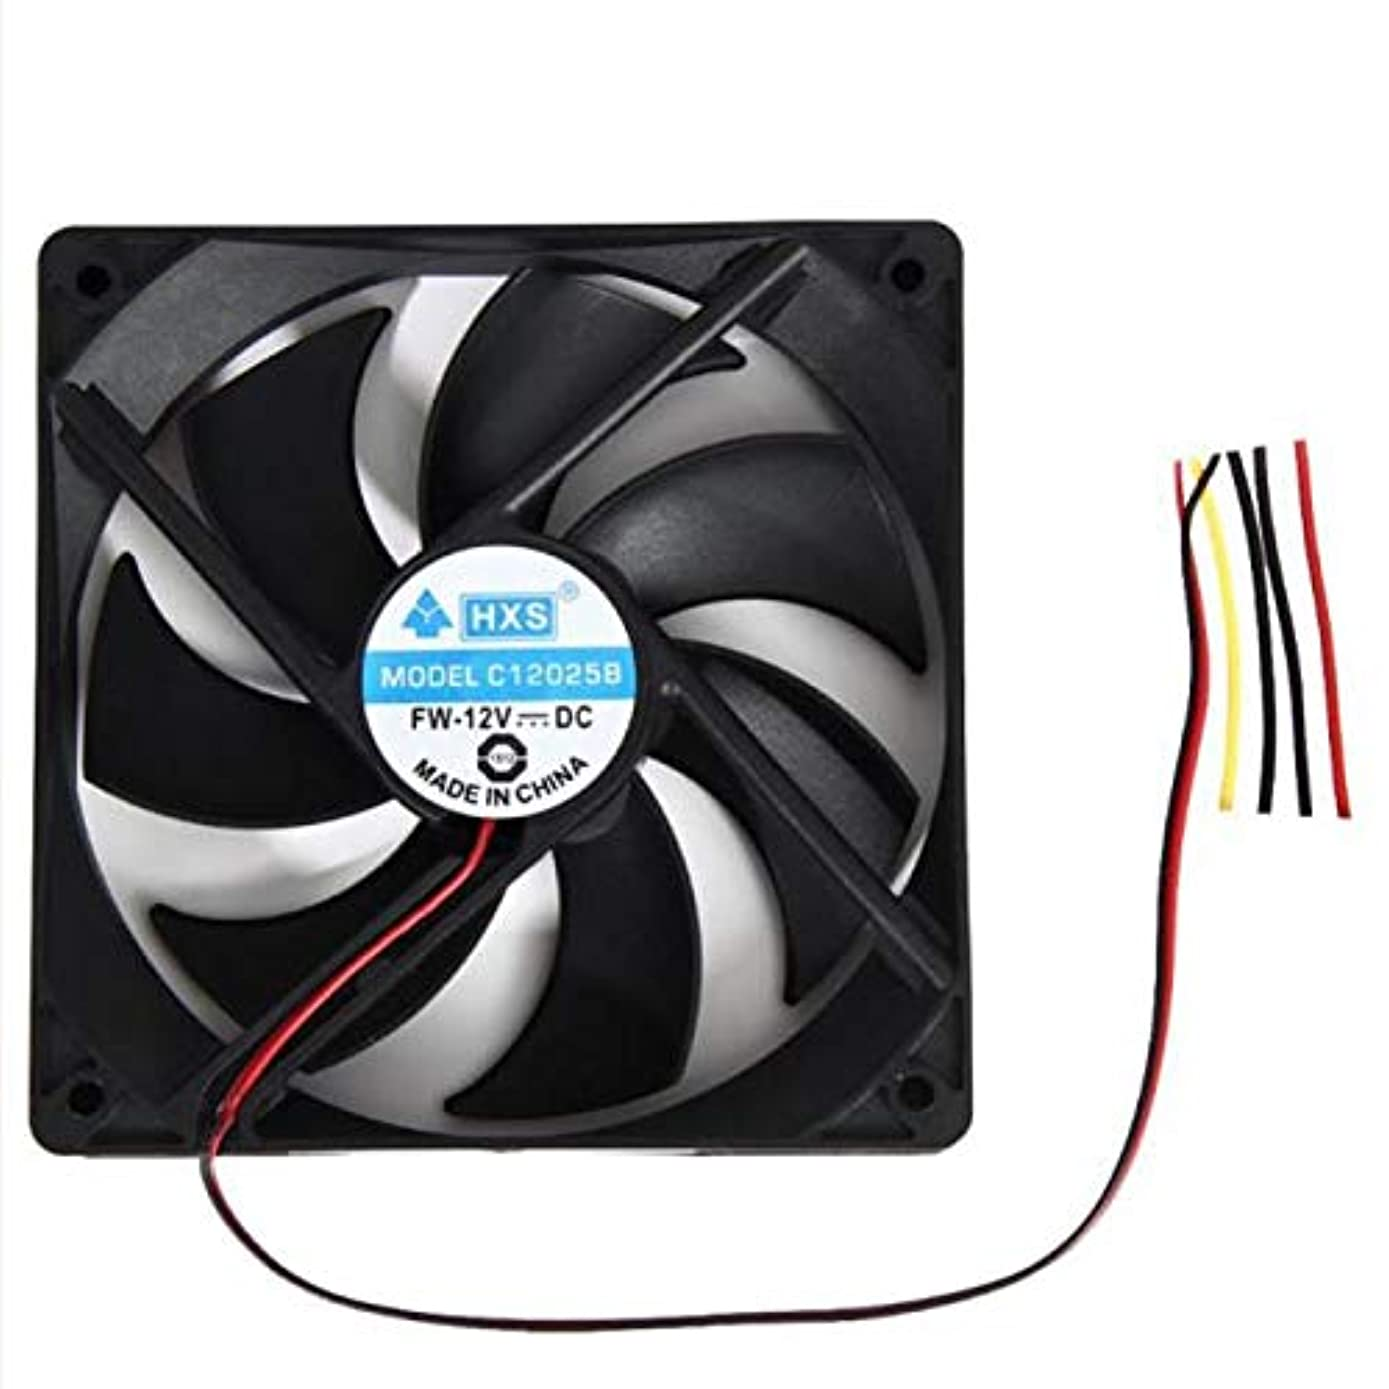 GOVOW-Tech 1pcs 120mm 120x25mm 12V 4Pin DC Brushless PC Computer Case Cooling Fan 1800PRM- High Tensile Strength - Innovative Design